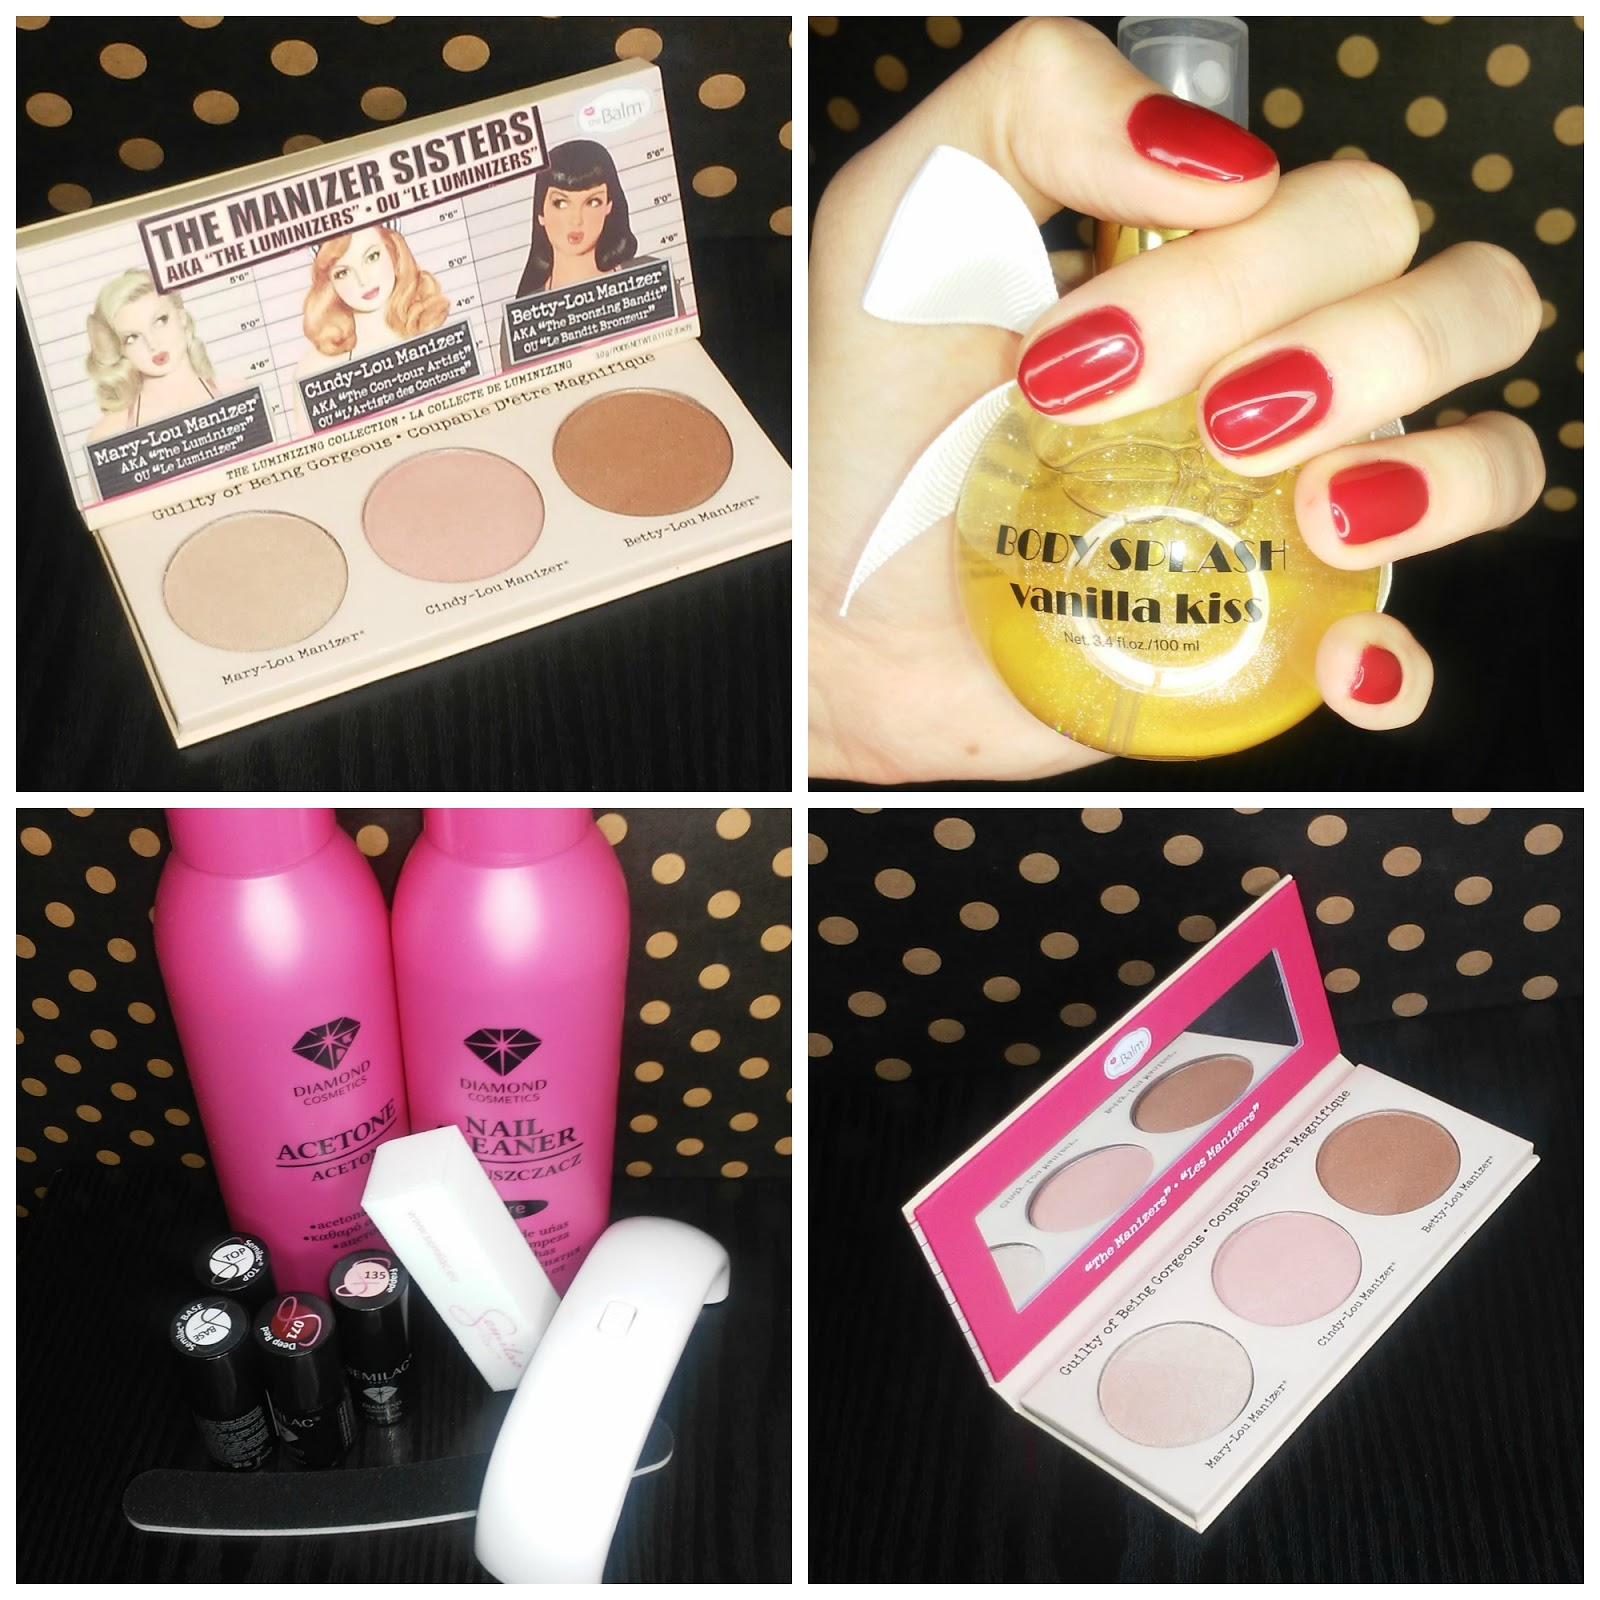 MANICURE HYBRYDOWY SEMILAC + THE BALM THE MANIZER SISTERS